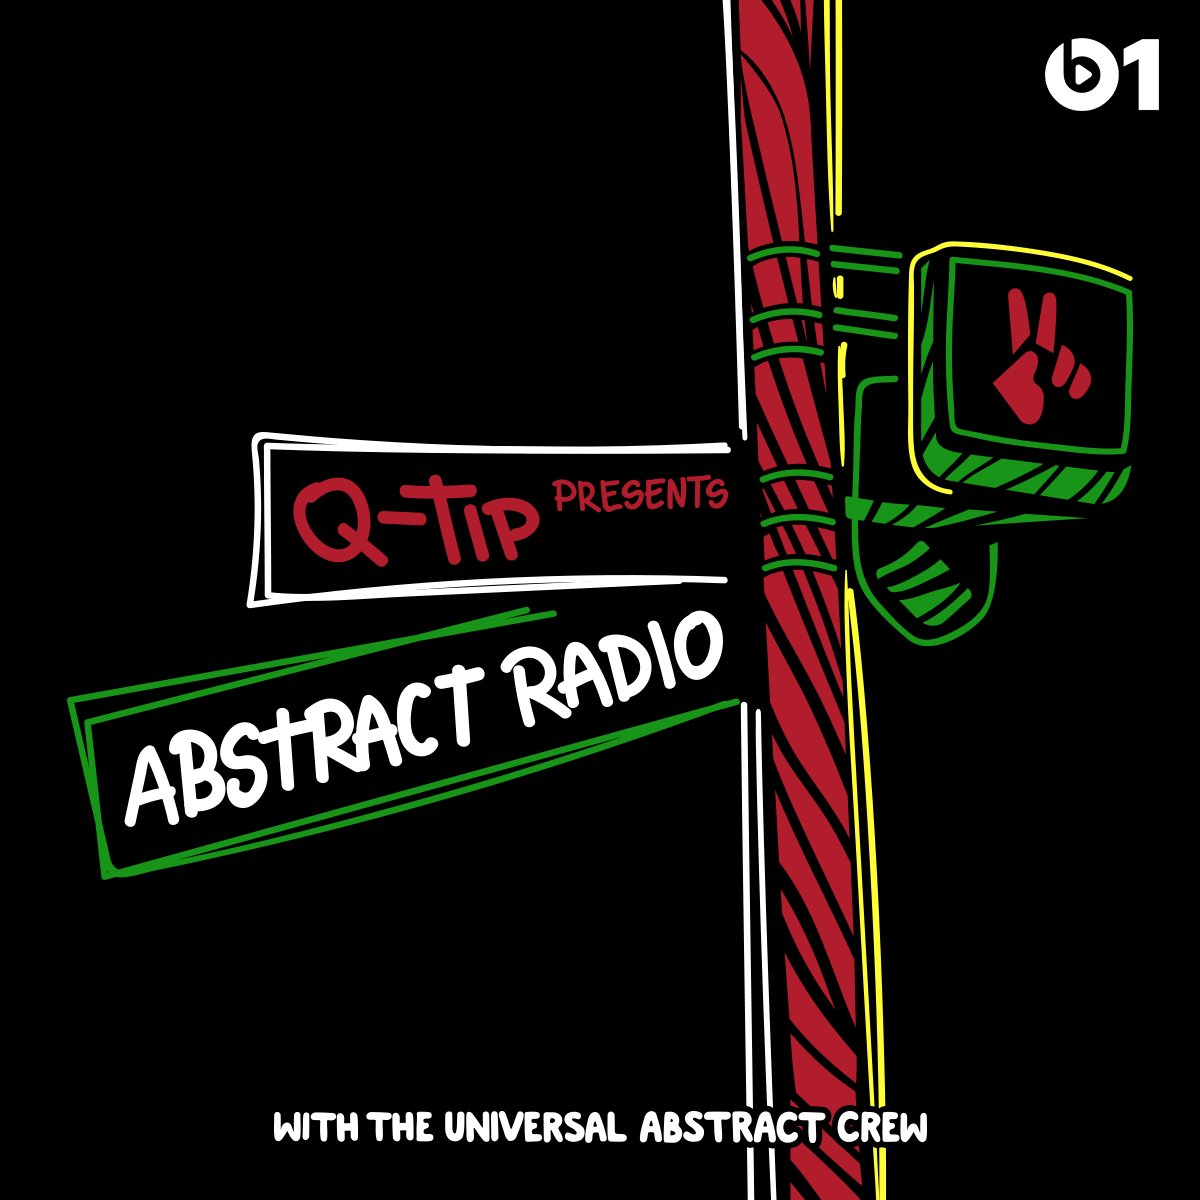 The Get Down continues with a mix of summer favorites on @QtipTheAbstract's #AbstractRadio. Catch a vibe. https://t.co/rAPwDbKt1V